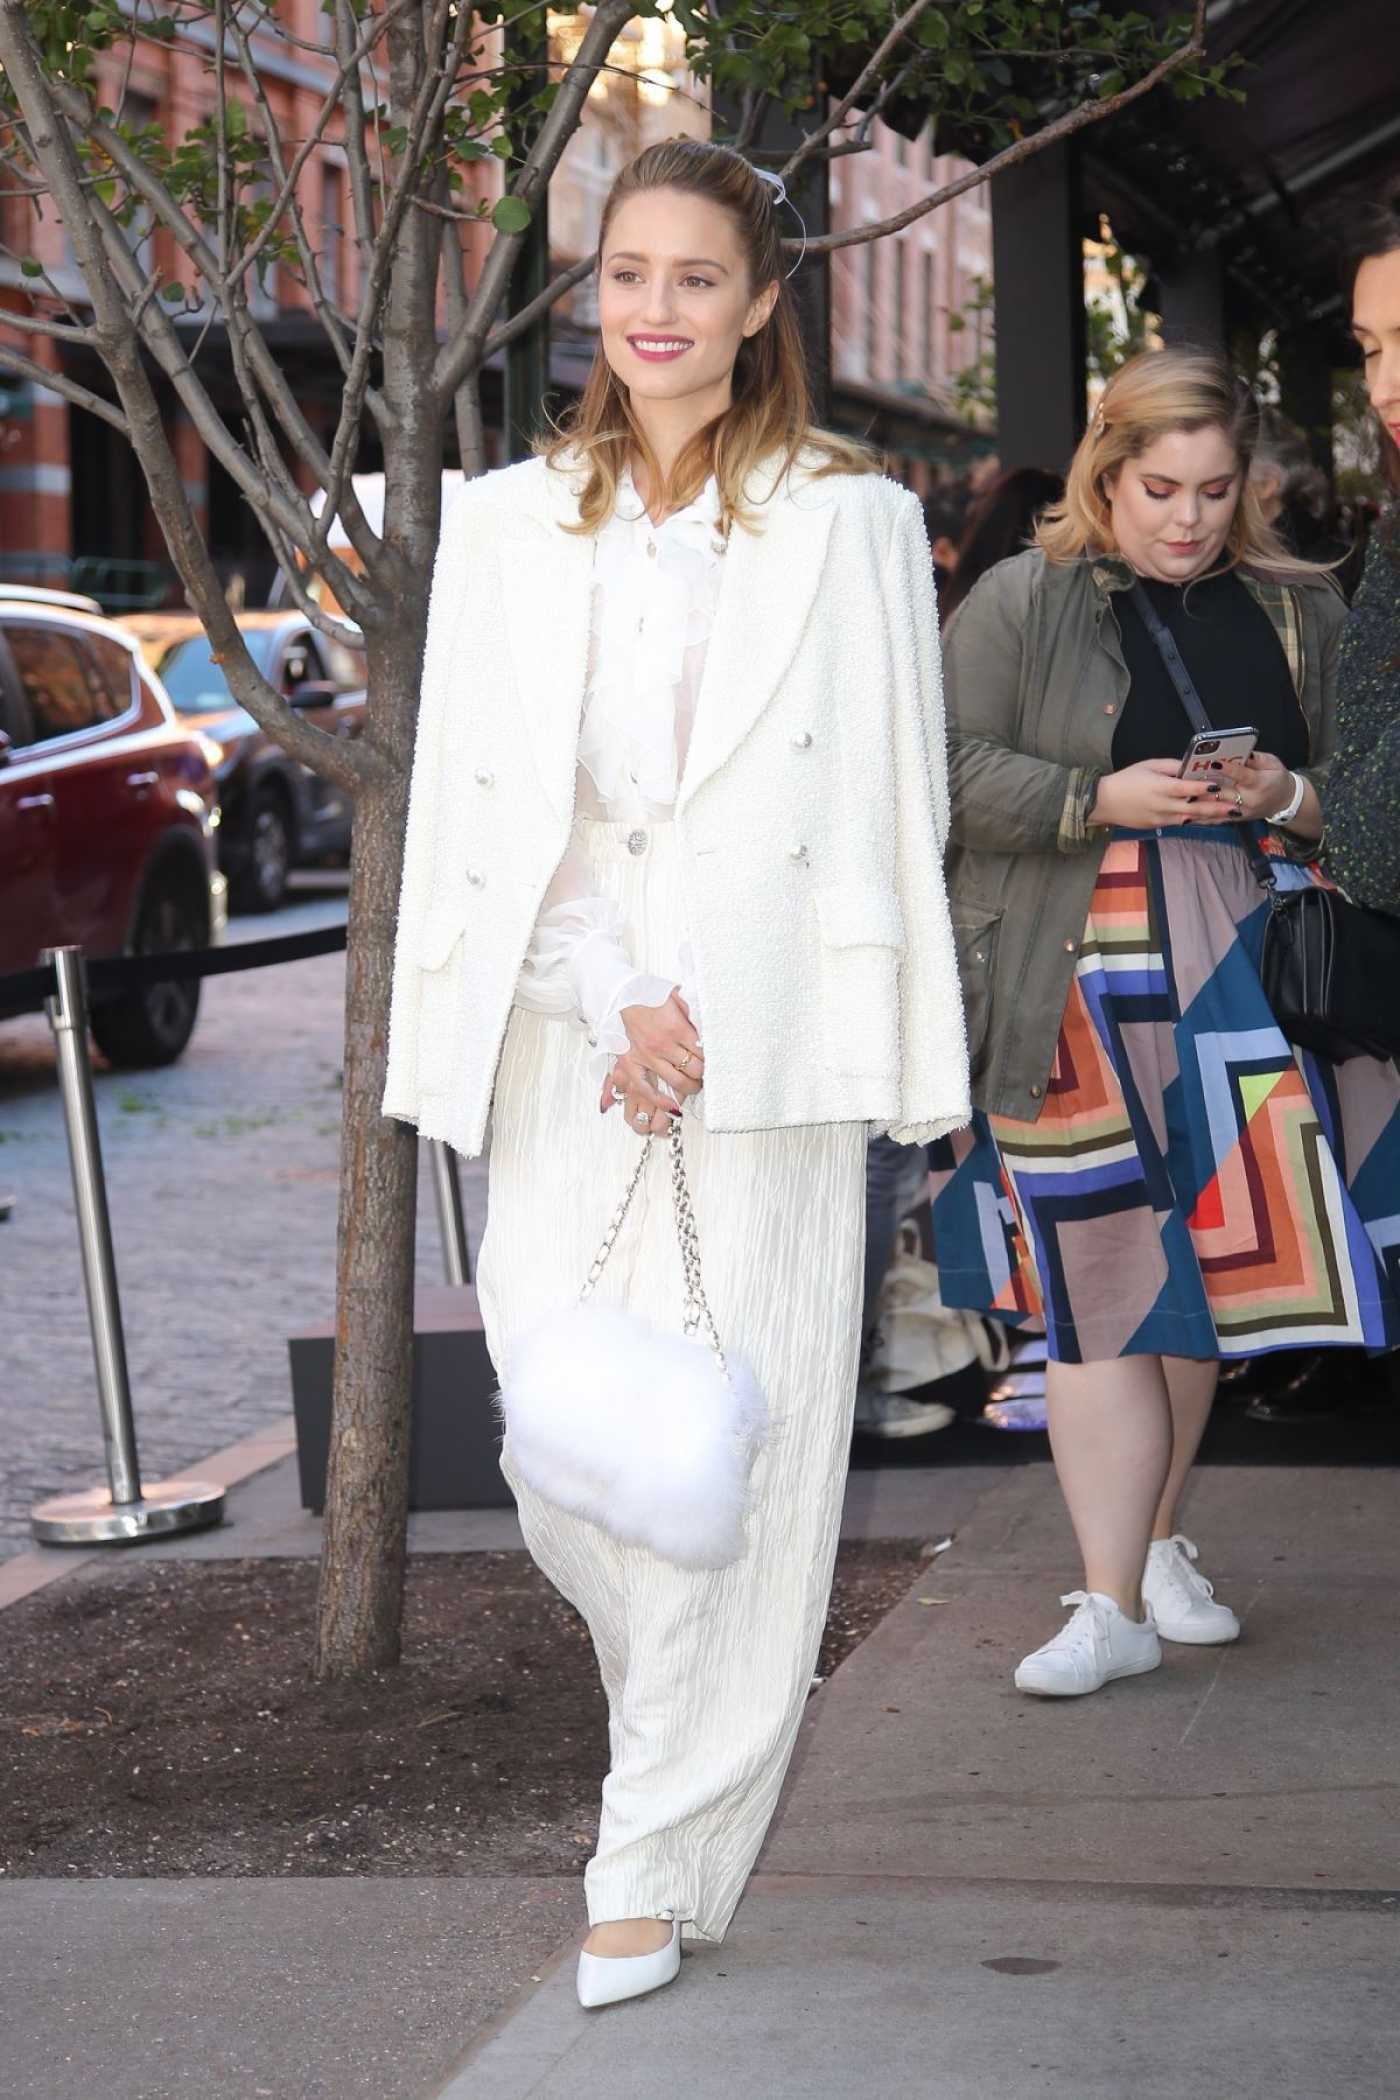 Dianna Agron in a White Suit Arrives at Tribeca Chanel Women's Filmmaker Program Luncheon in NY 11/04/2019